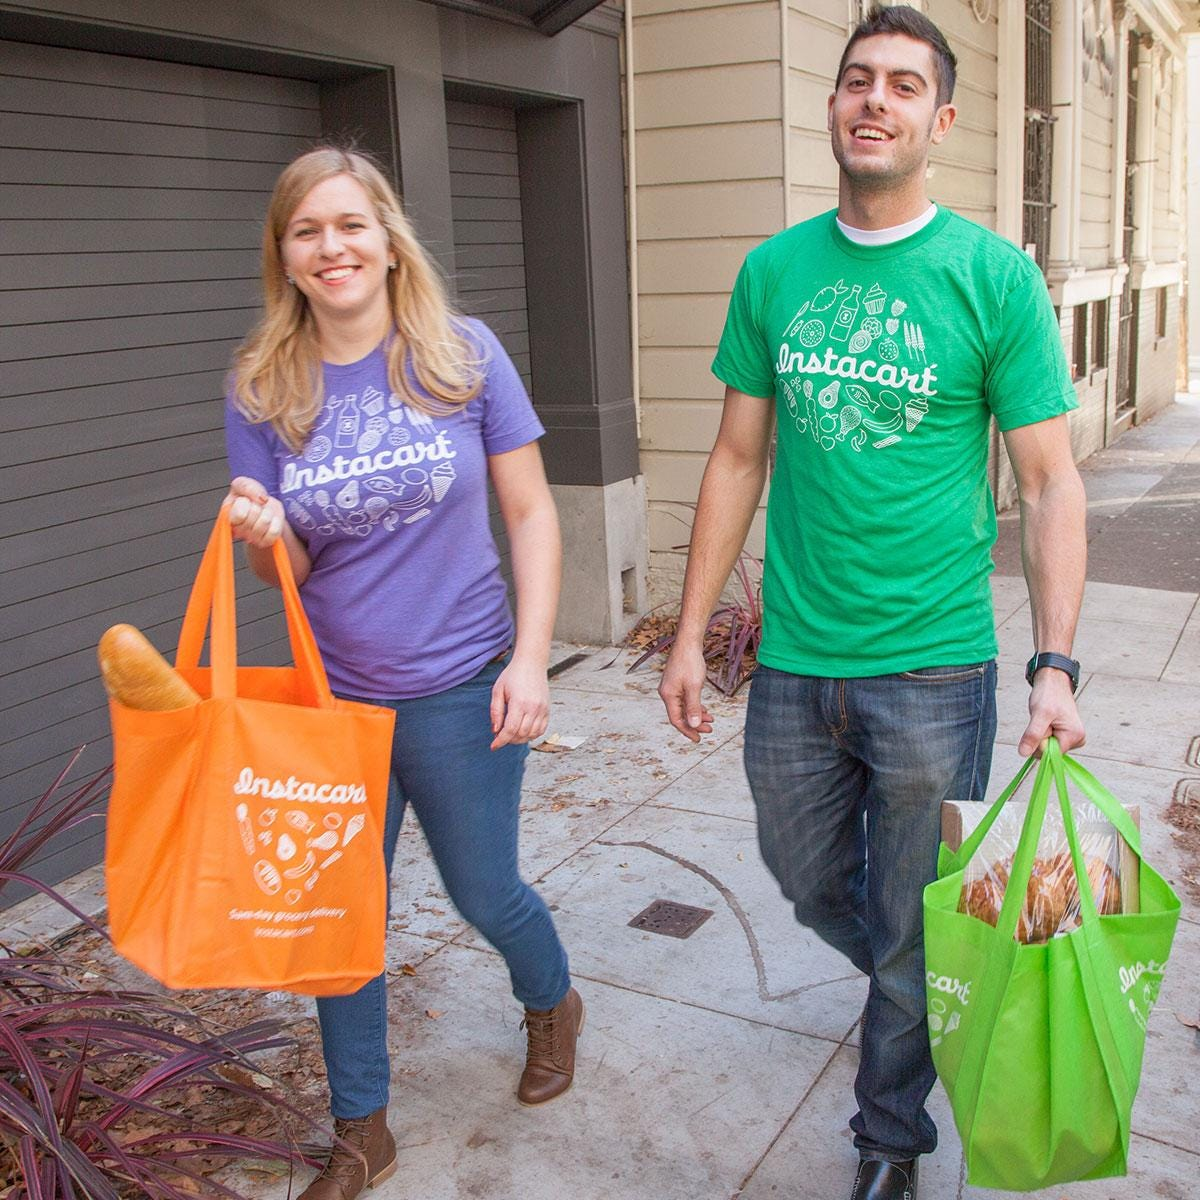 Instacart grocery delivery expanding in Indianapolis-area